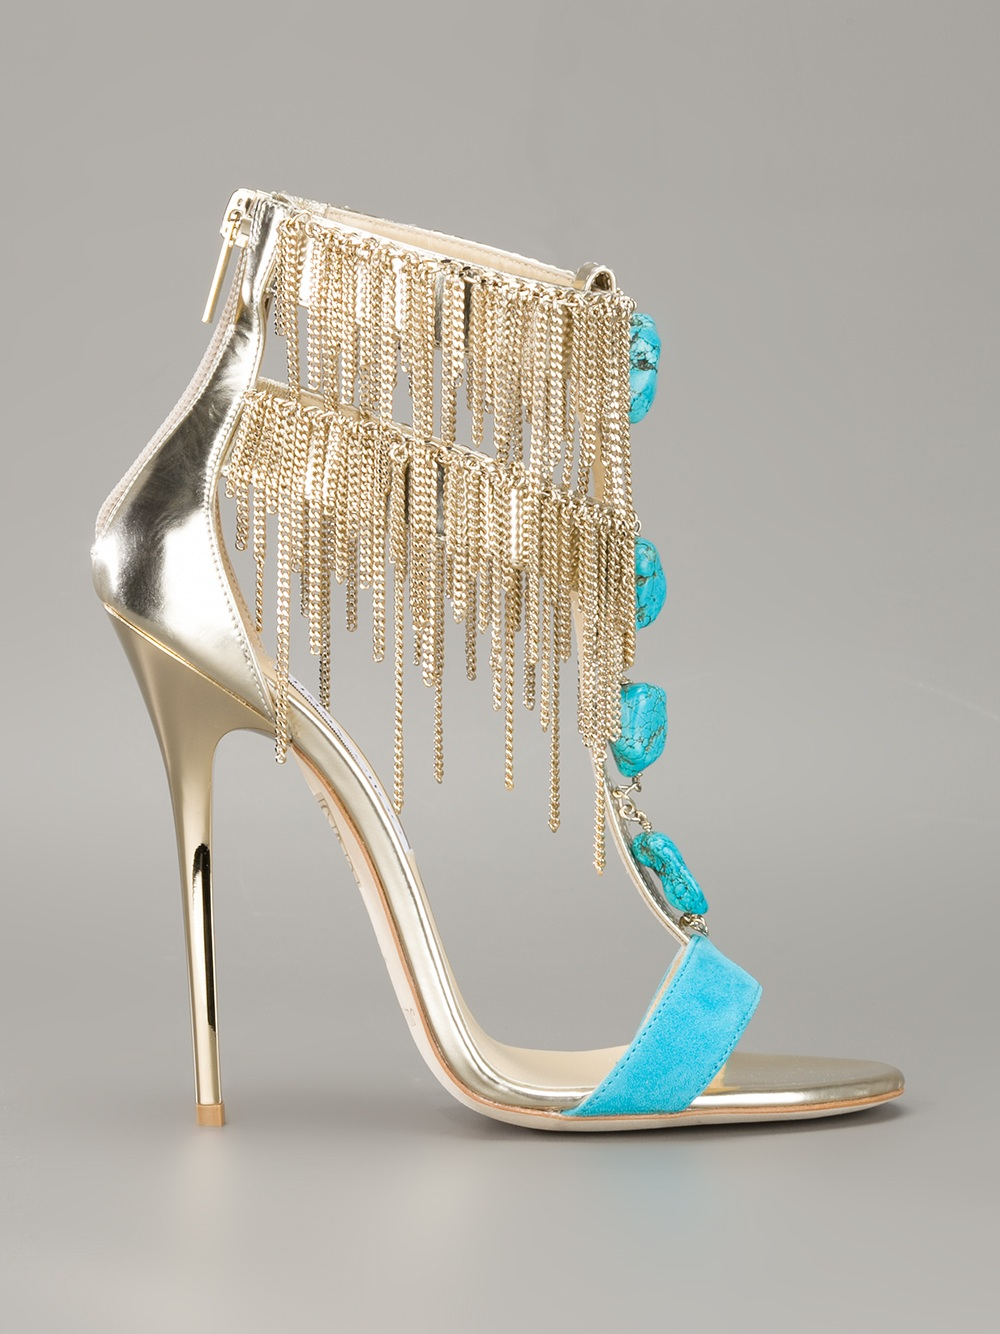 203de914d81 Shoeniverse  JIMMY CHOO Blue Belle Sandal